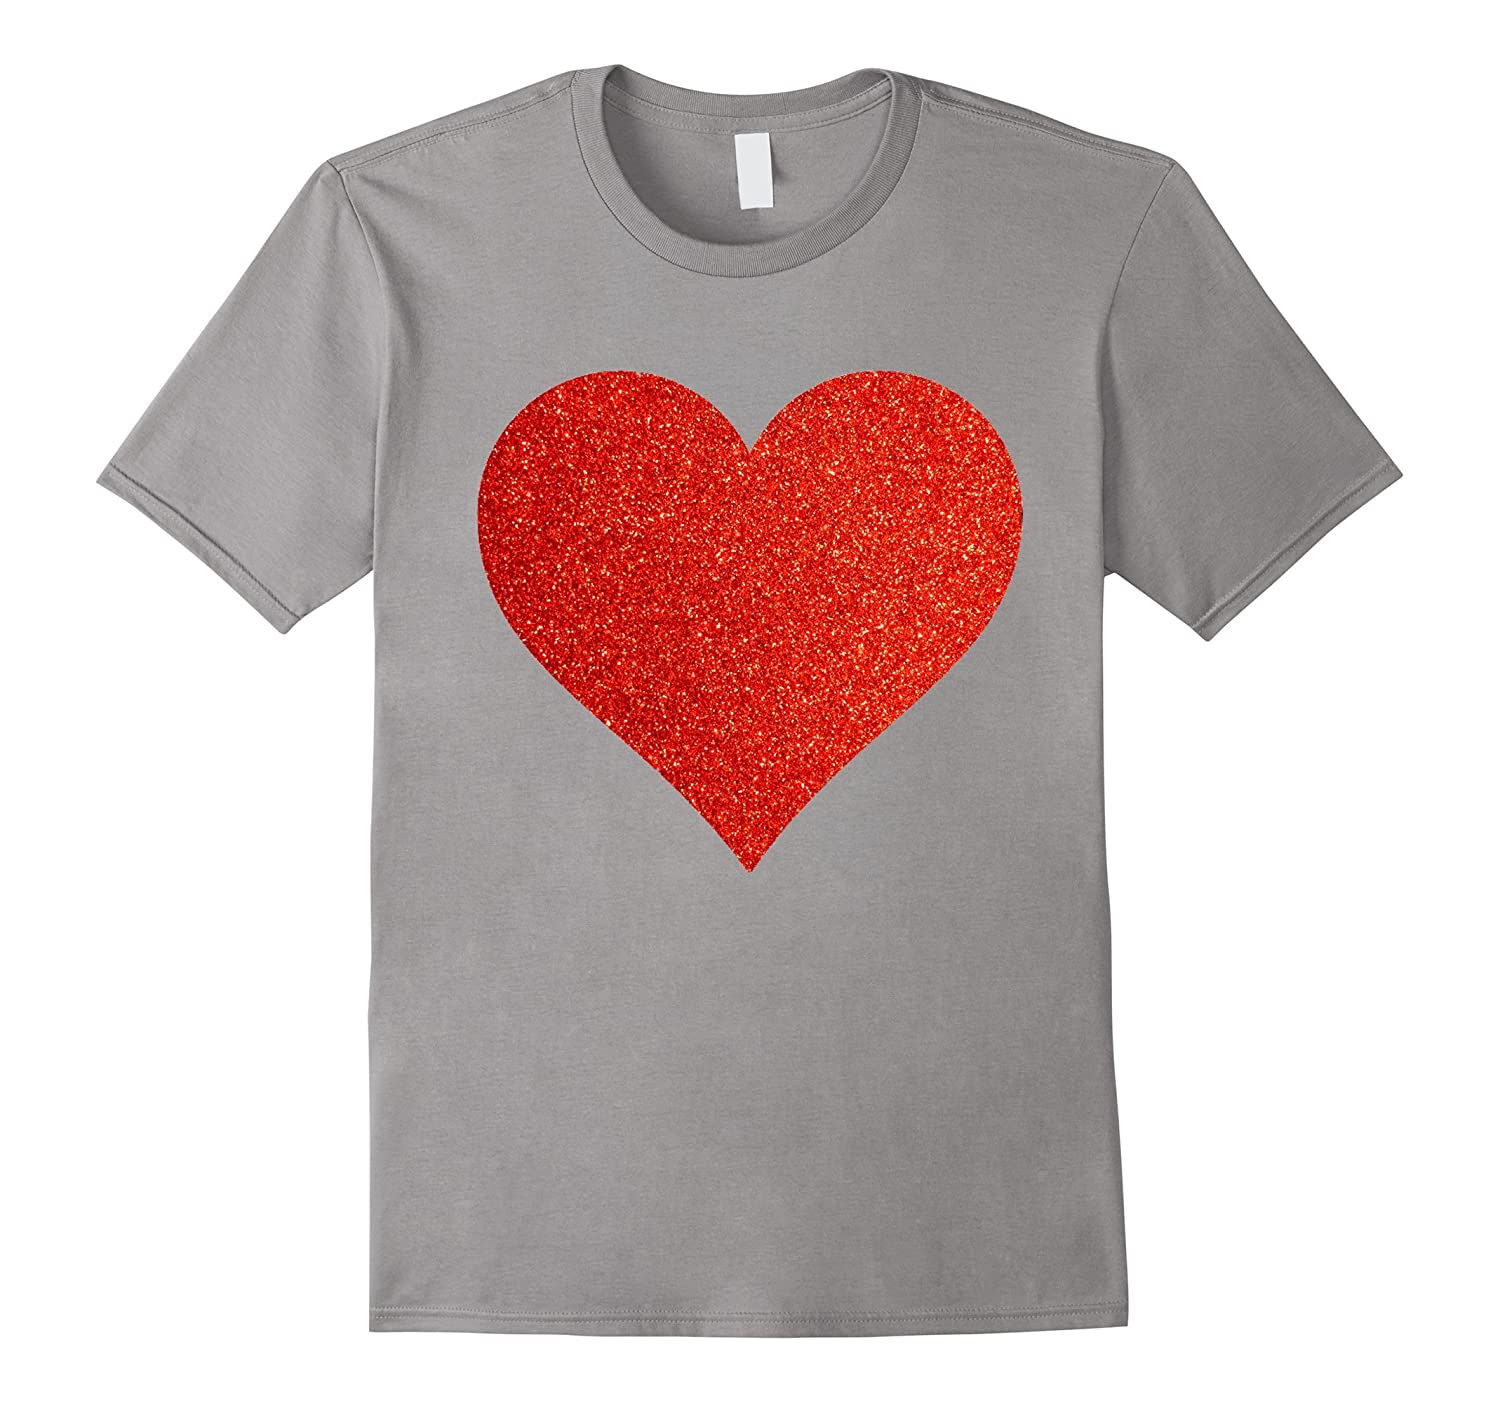 Fancy Red Heart T Shirt Love Happiness Symbol Ah My Shirt One Gift